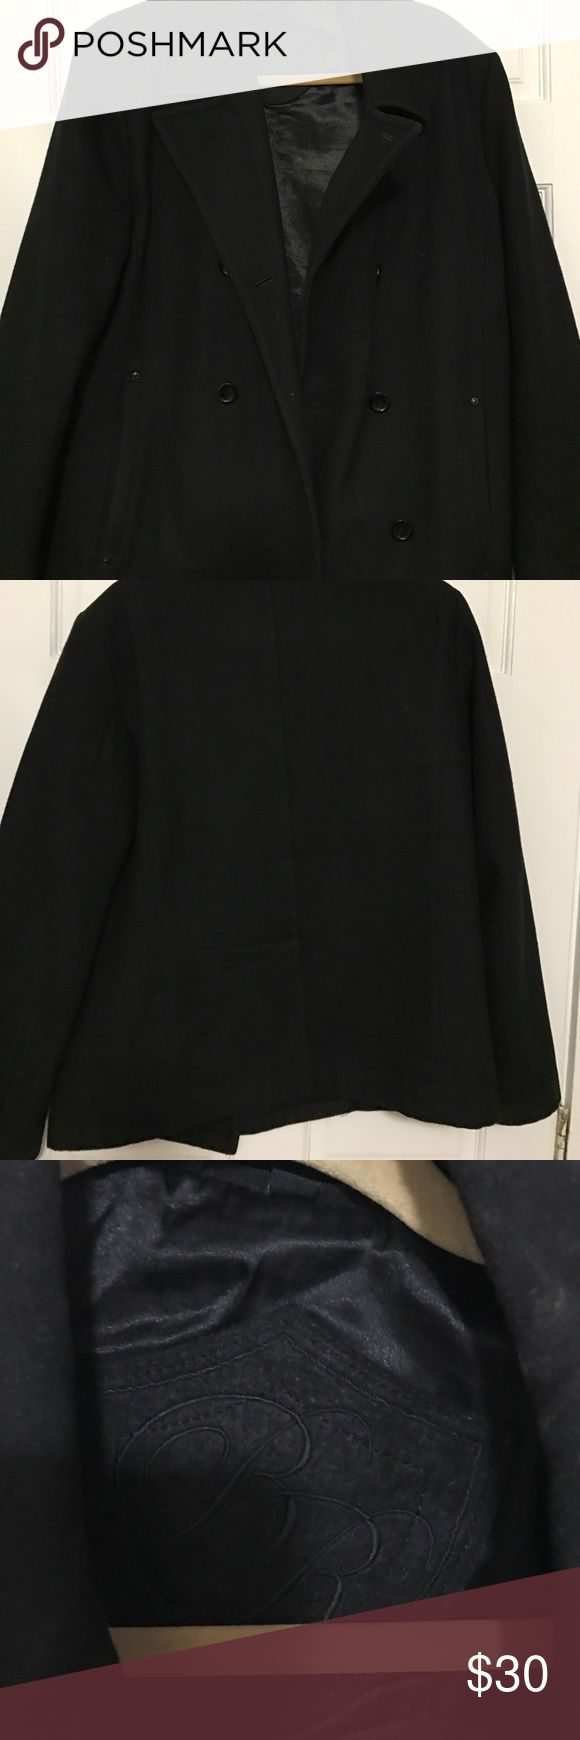 Men's Peacoat Men's peacoat. I think the size is medium but it could be a small. I also do not know the brand. In good condition, only worn once. Jackets & Coats Pea Coats